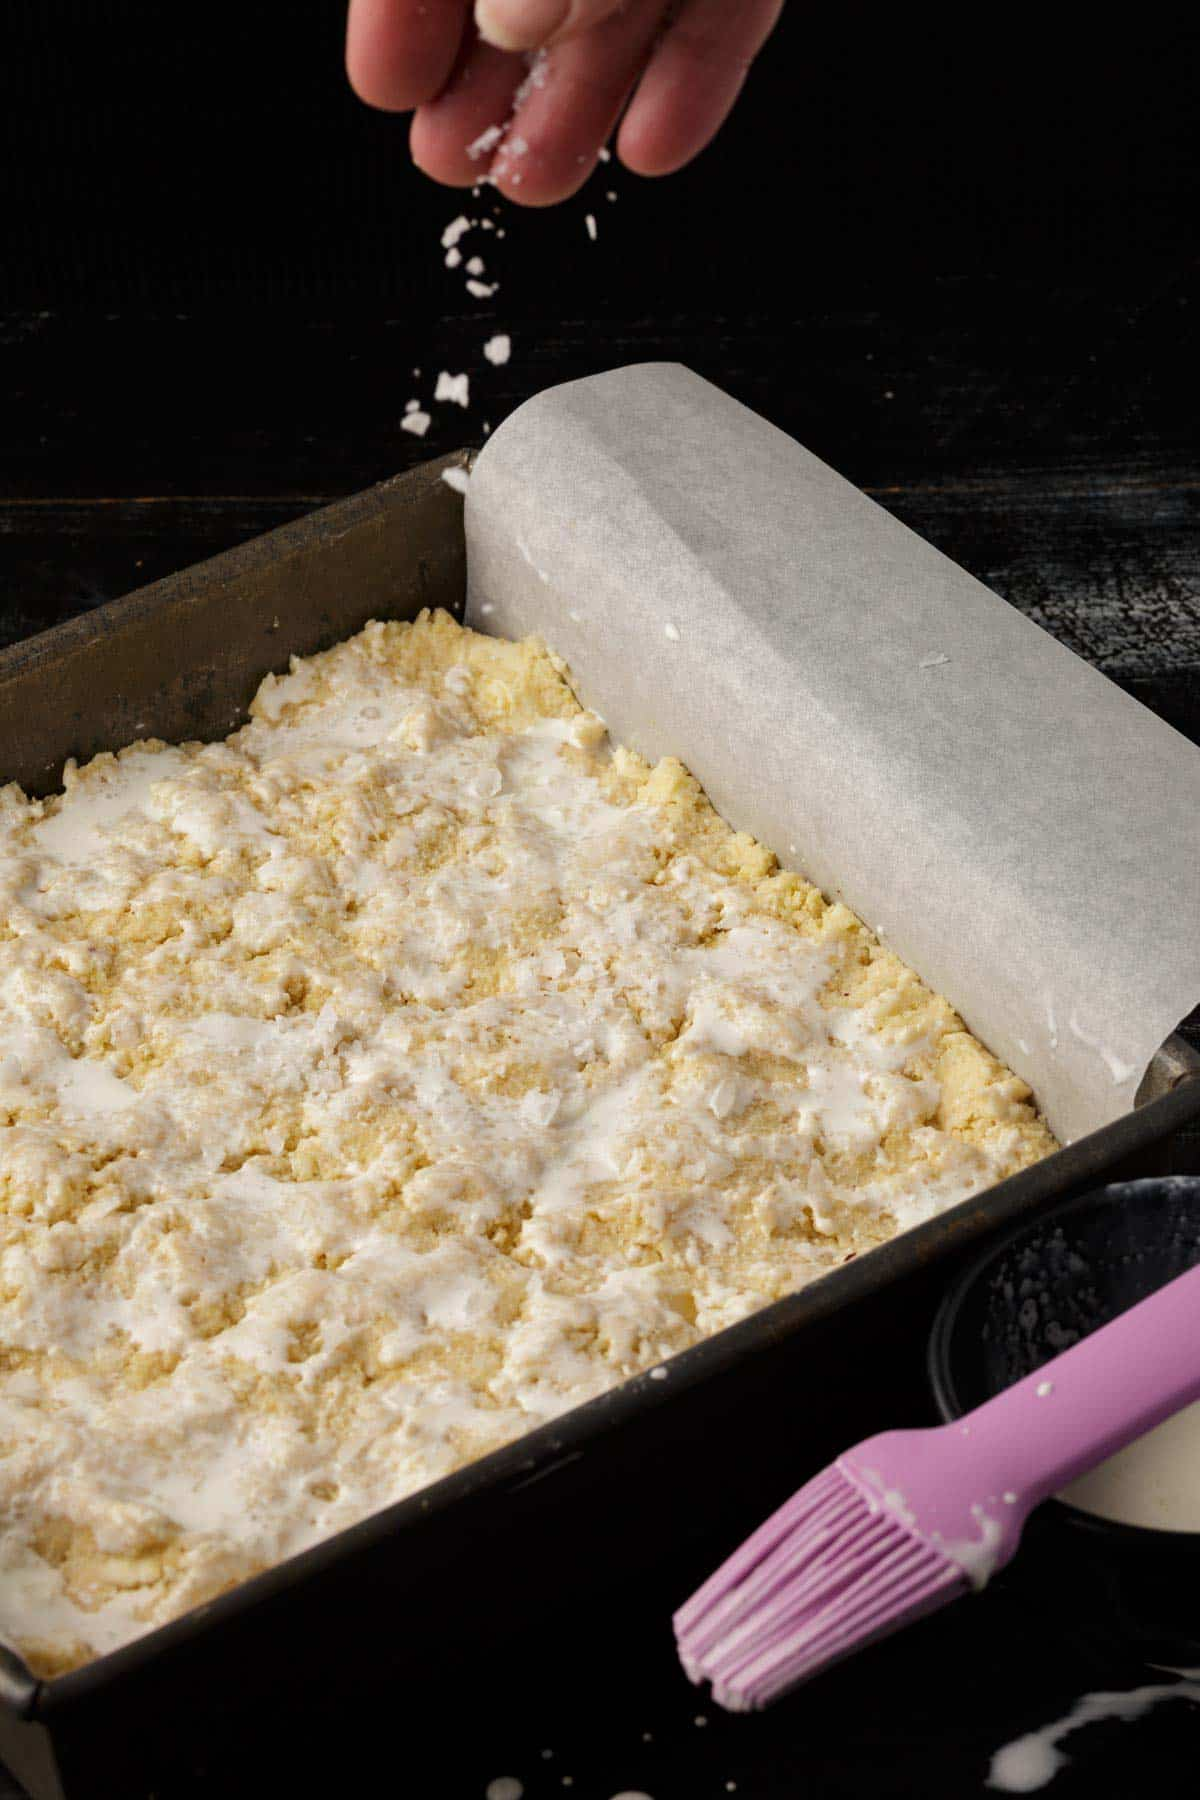 Biscuit dough in a pan topped with cream